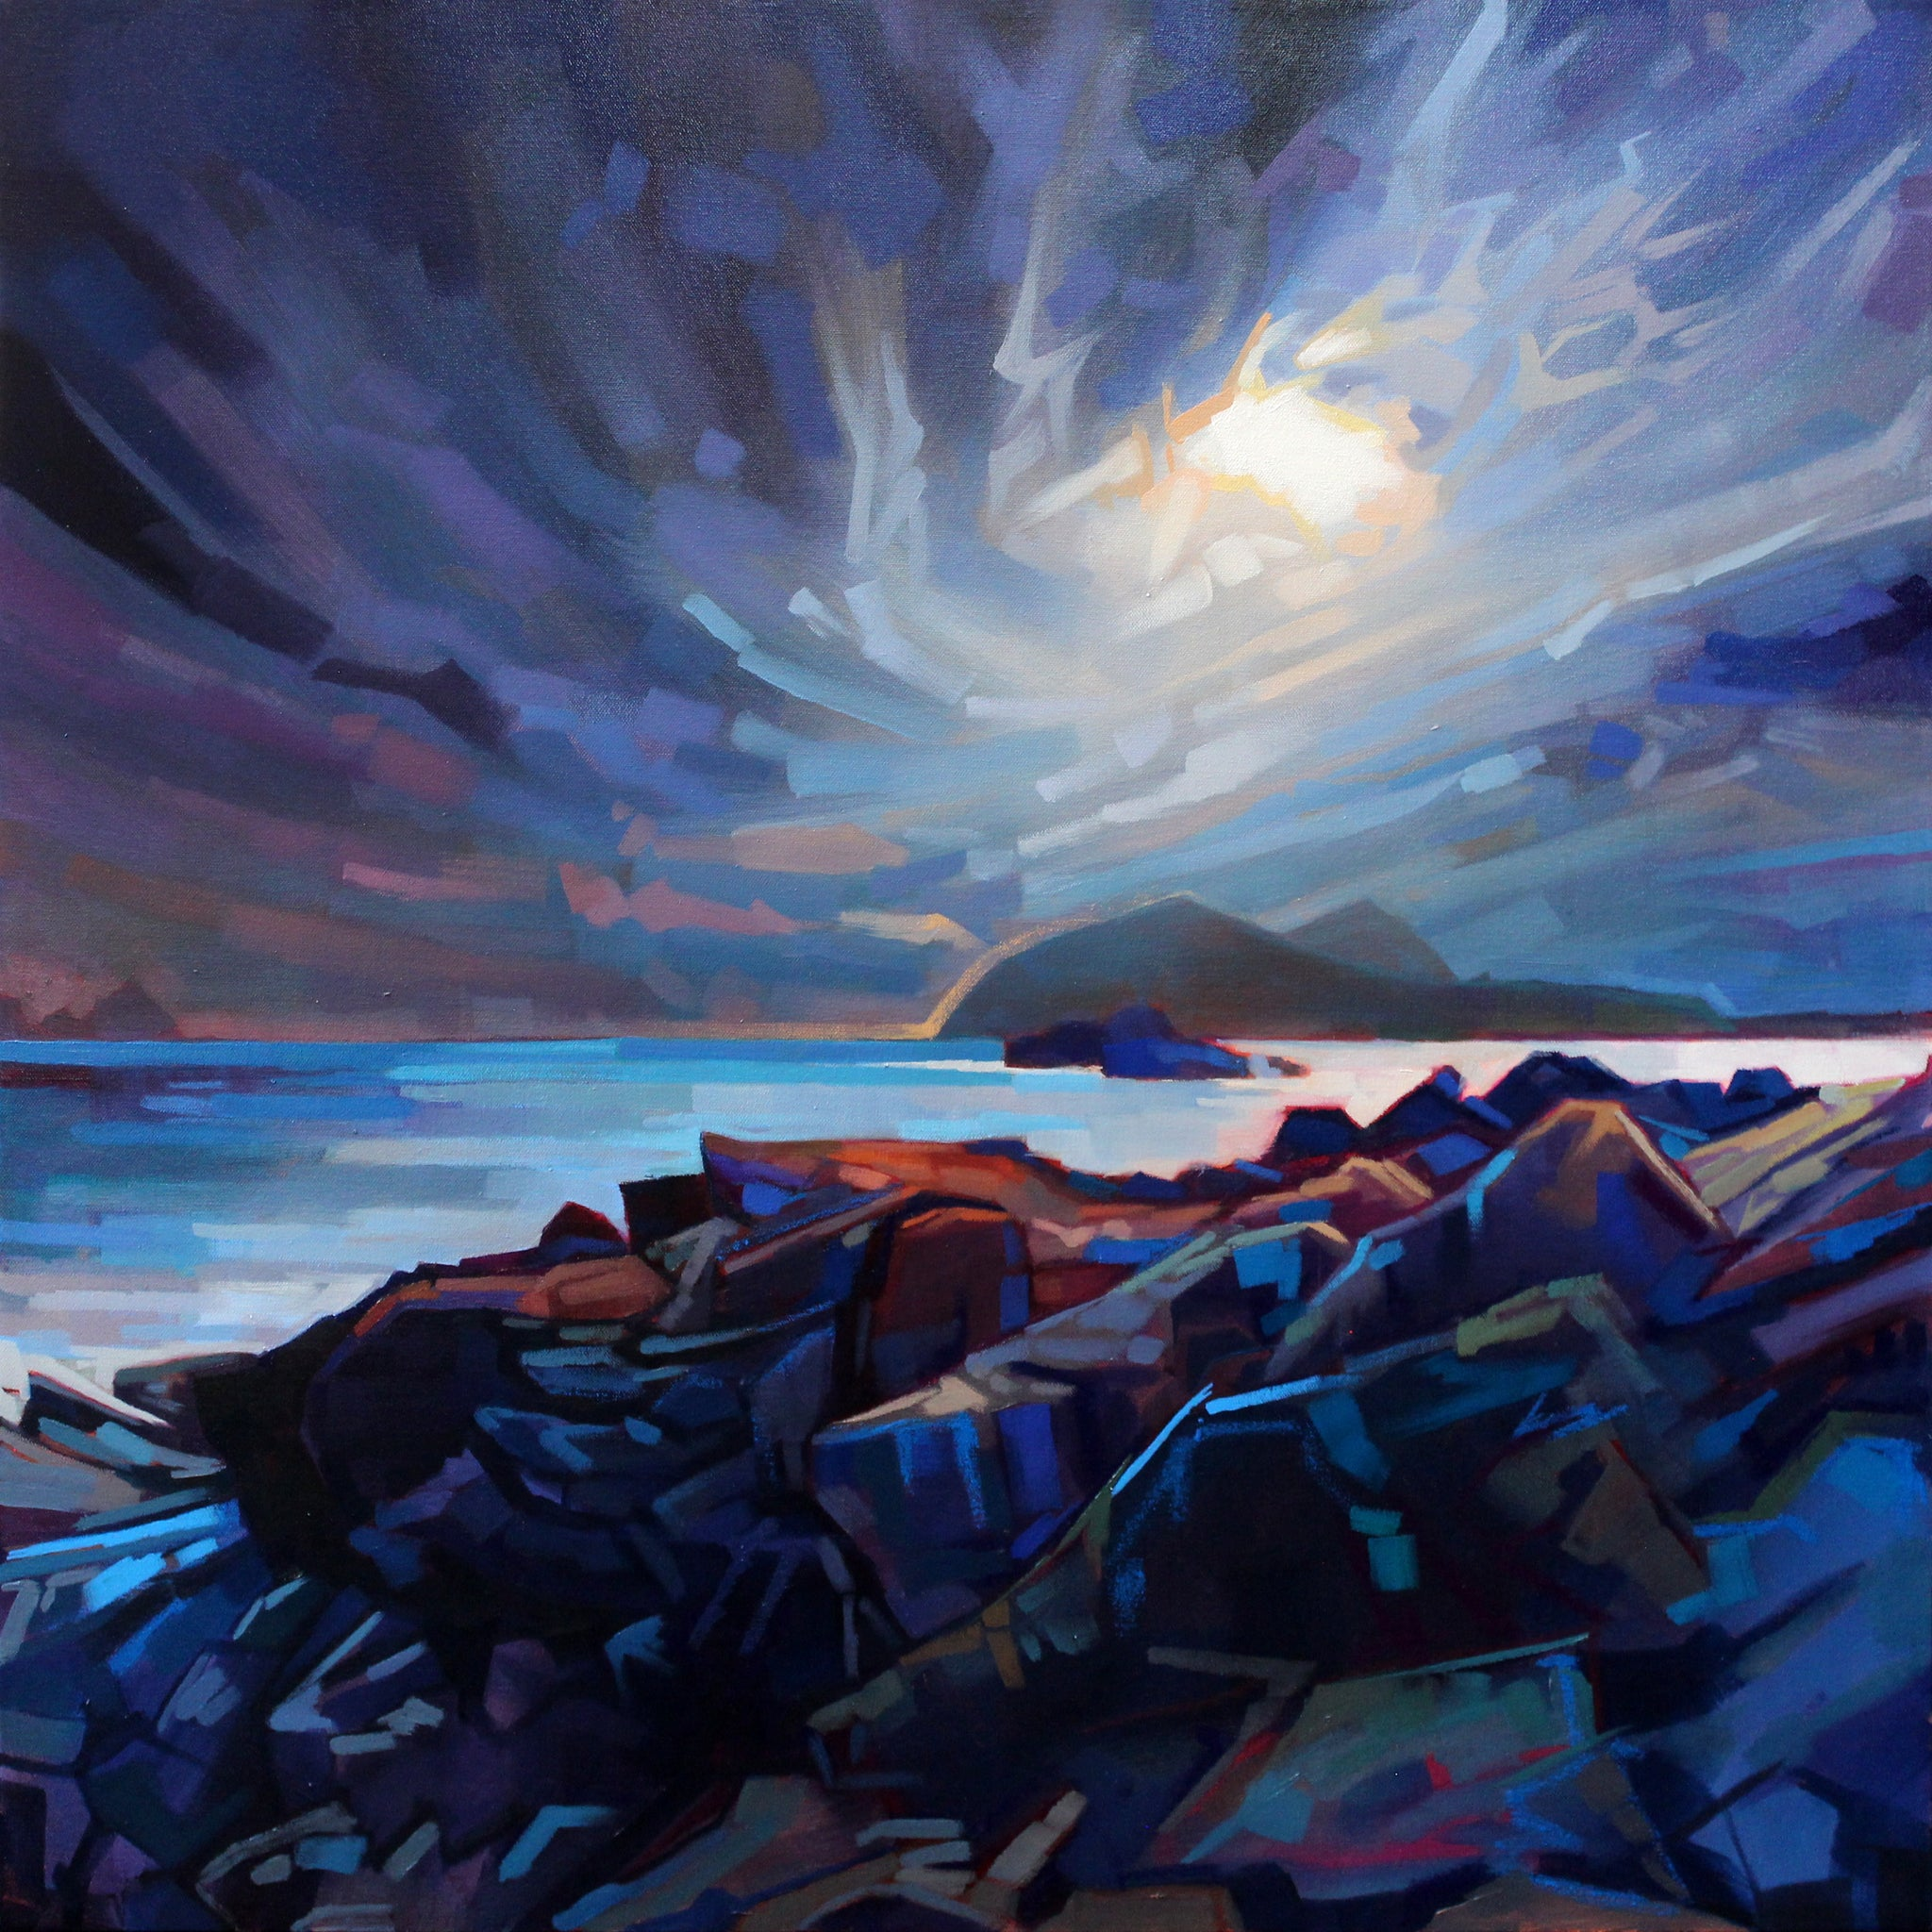 Towards The Blaskets - Contemporary art from Ireland. Paintings & prints by Irish seascape & landscape artist Kevin Lowery.